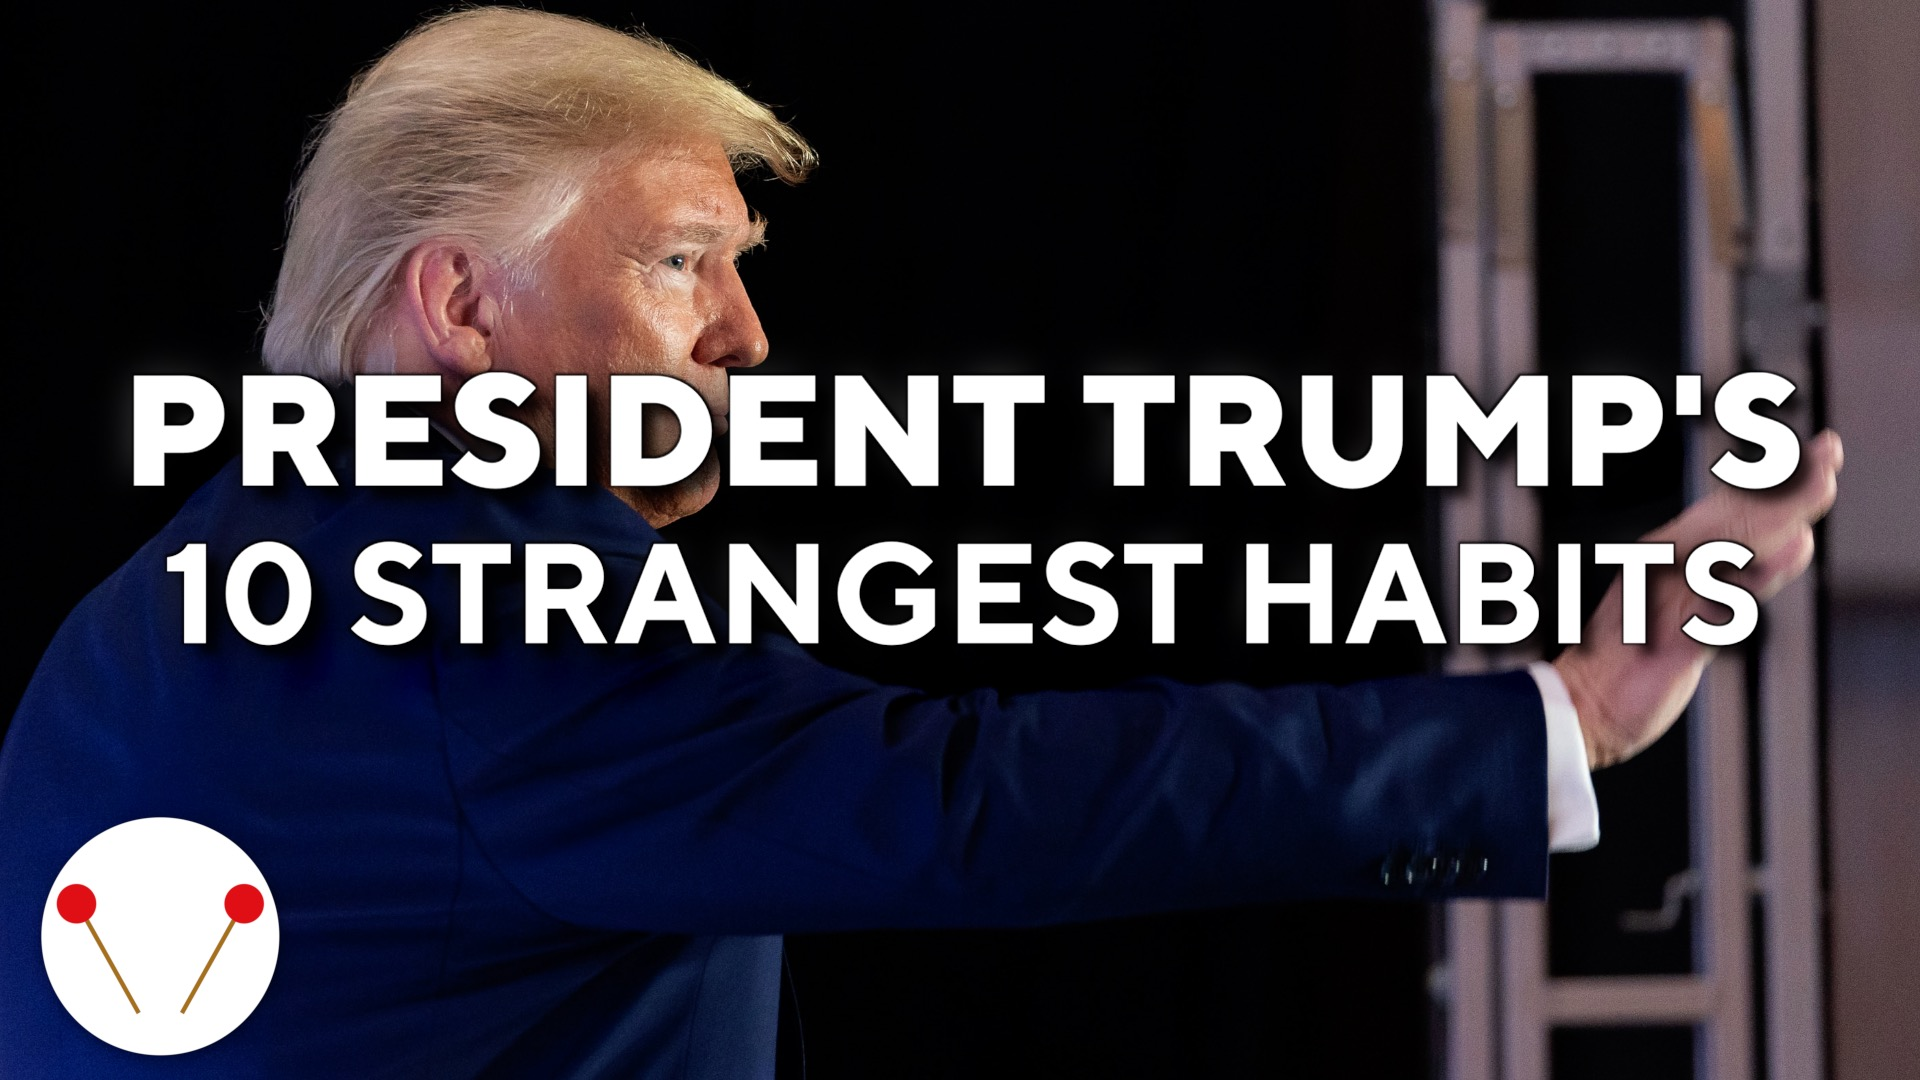 President Trump's 10 Weirdest Habits